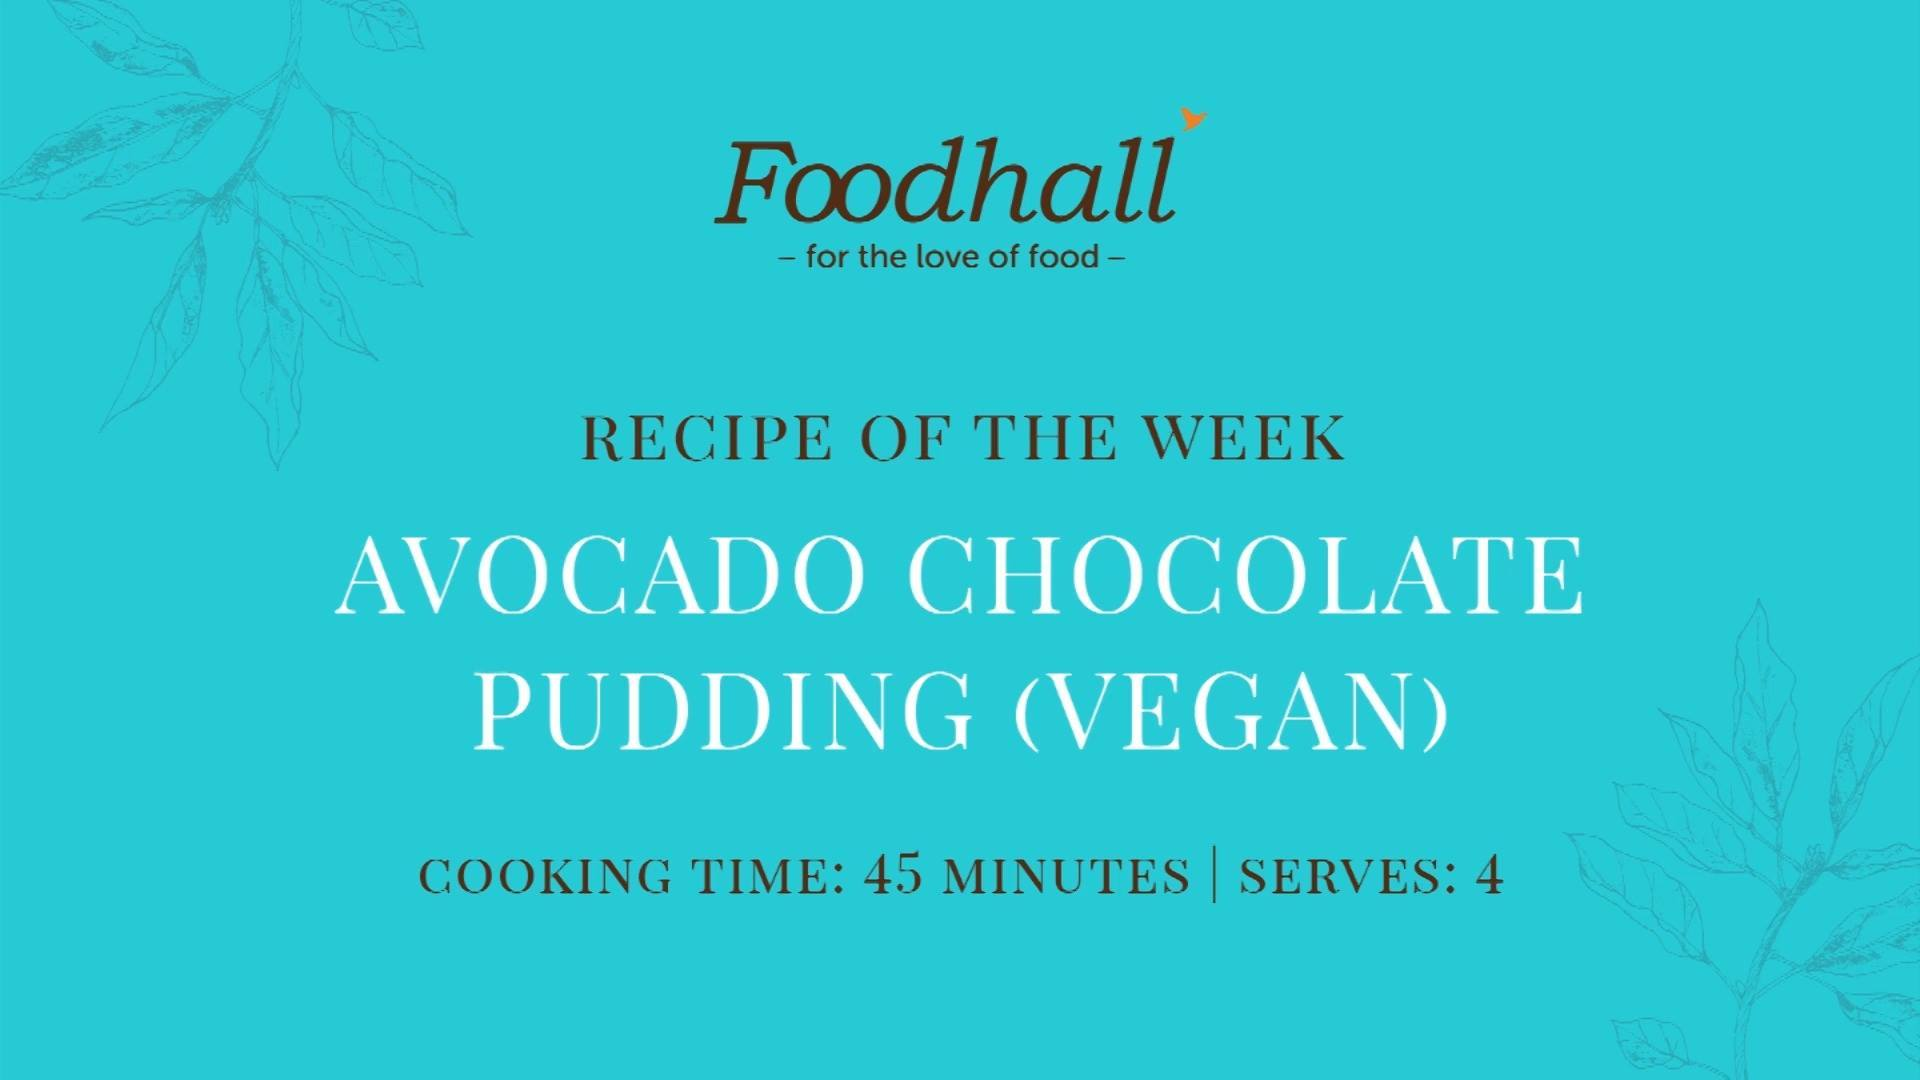 #RecipeoftheWeek: Avocado Chocolate Pudding  Deliciously smooth and creamy, this surprisingly easy #dessert combines two of our greatest loves – chocolate & avocado, for a velvety treat that's oh so blissfully satisfying! If you're whipping this up at home, do be sure to tag us – we'd love to see how you get on.  #AvocadoChocolatePudding #ForTheLoveofFood #FoodhallIndia #AvocadoLovers #ChocolateLovers #DessertTime #RecipeShare #HealthyDesserts